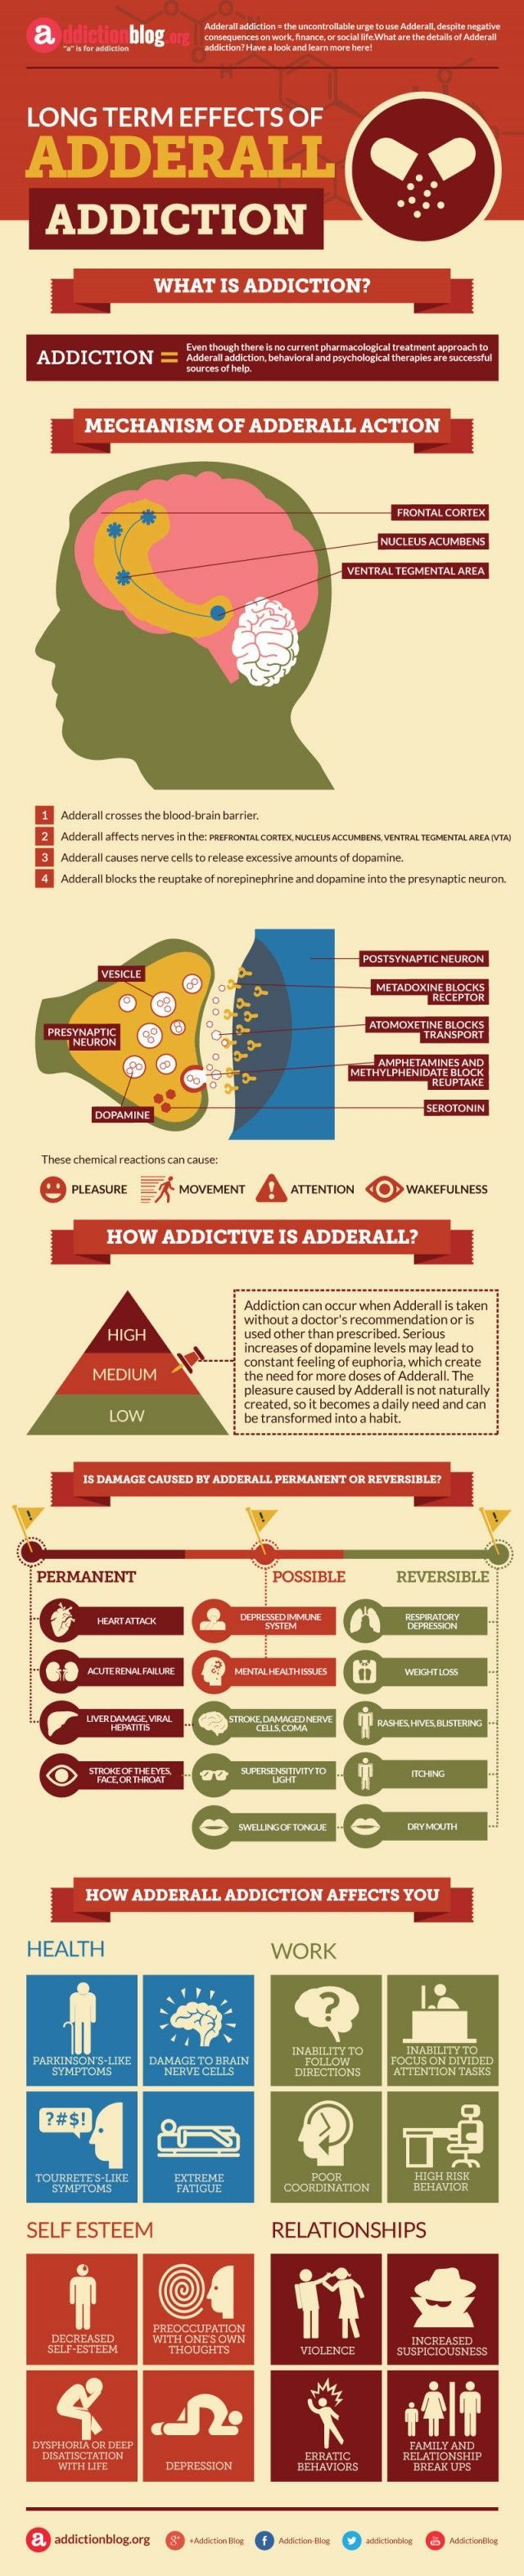 Long term effects of Adderall addiction (INFOGRAPHIC)   Addiction Blog